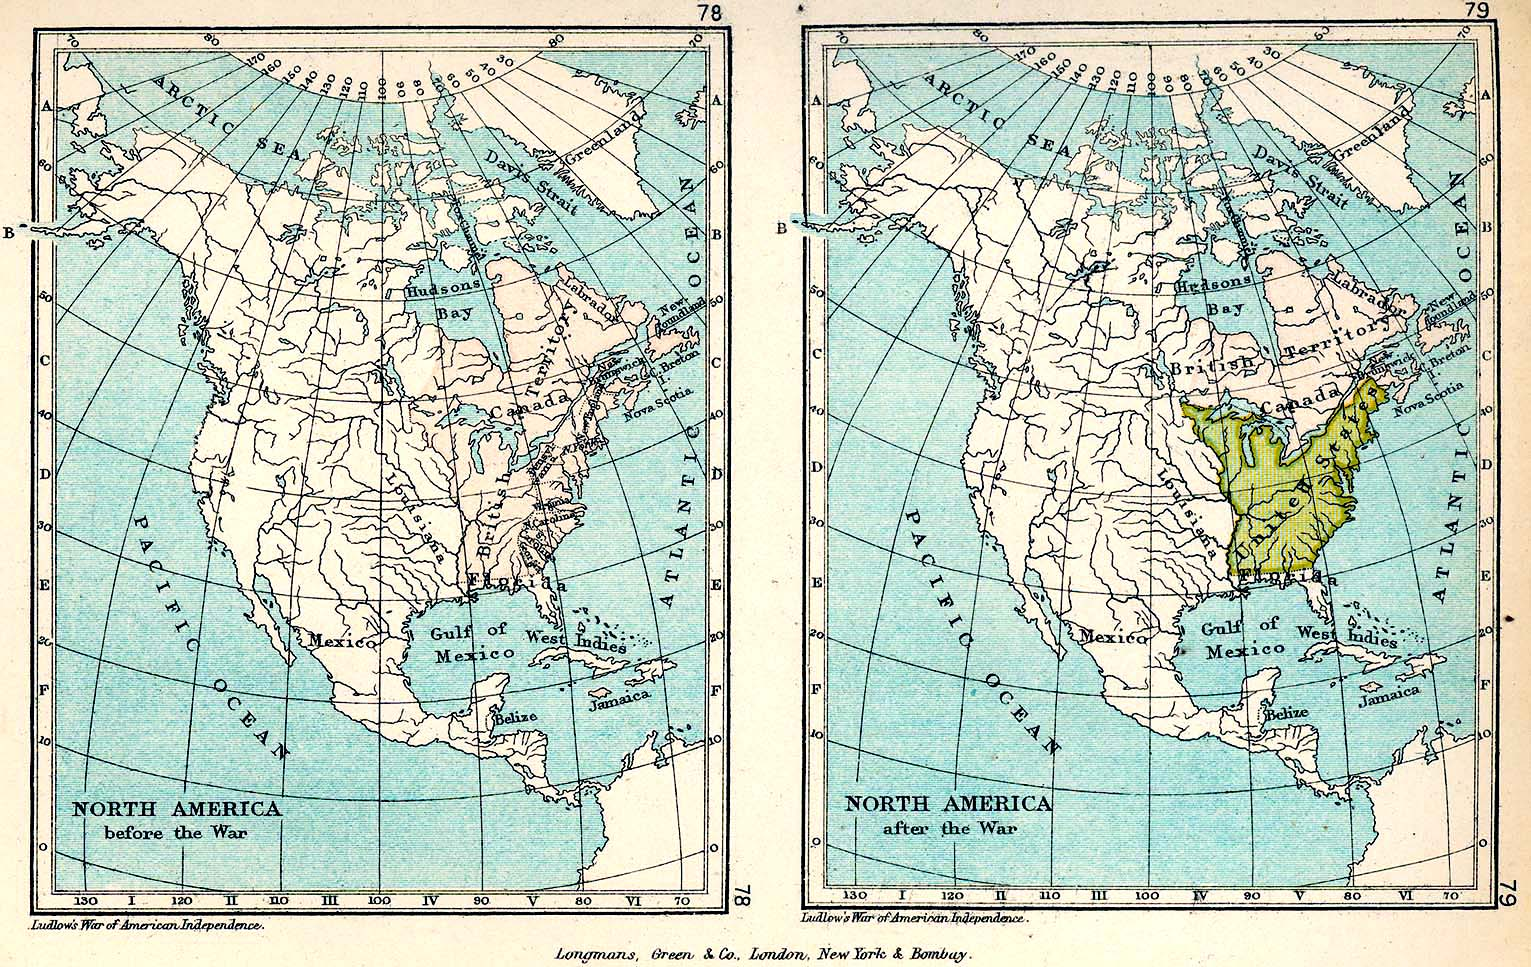 Two Maps of North America in 1775 and in 1783